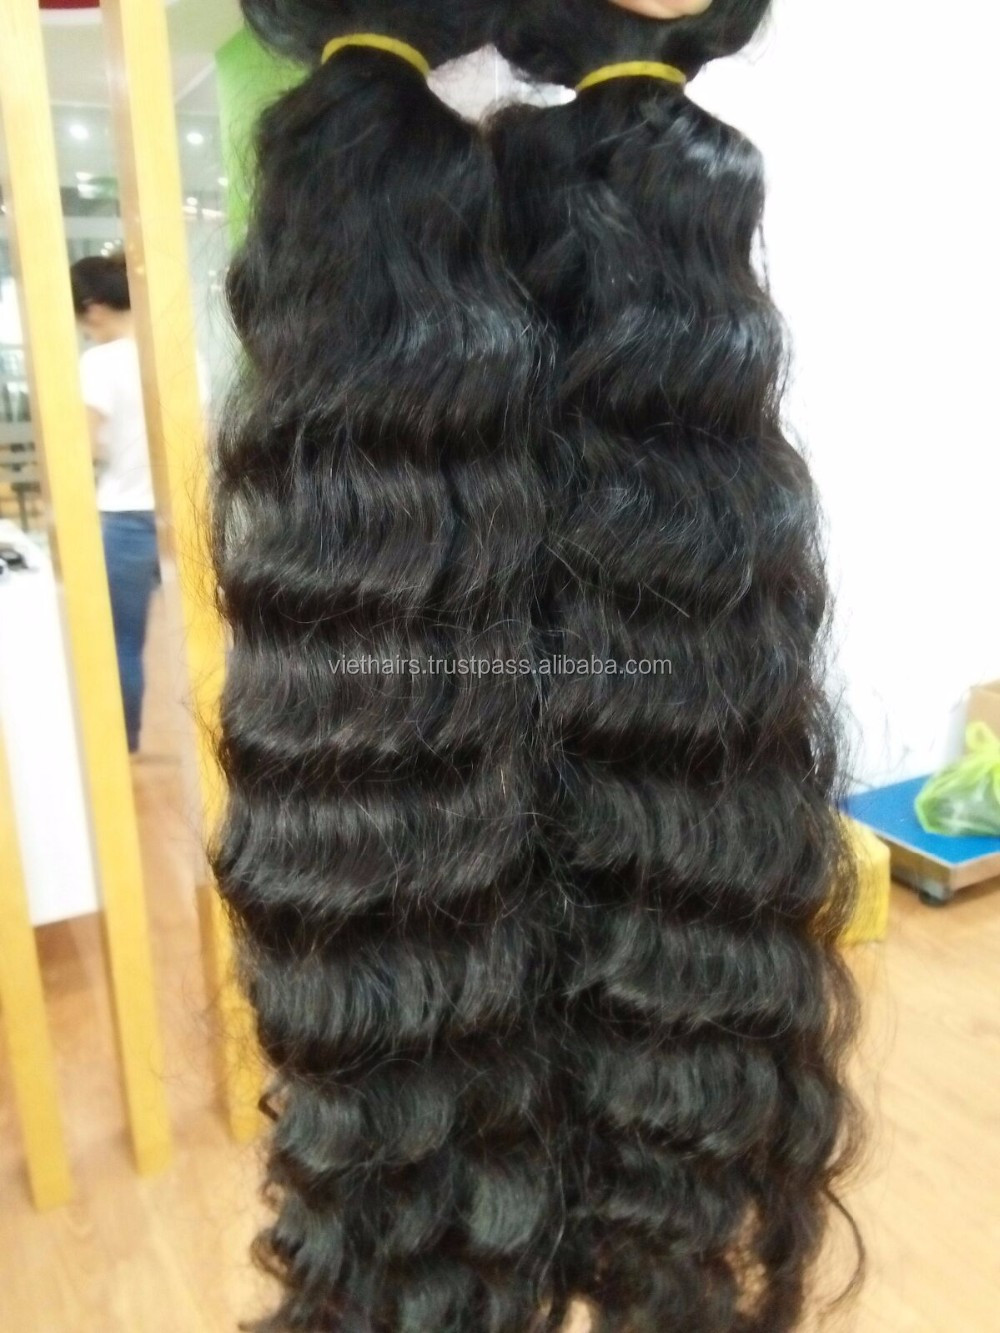 Hot trend textures natural wave hair Cambodian human extensions hair so nice